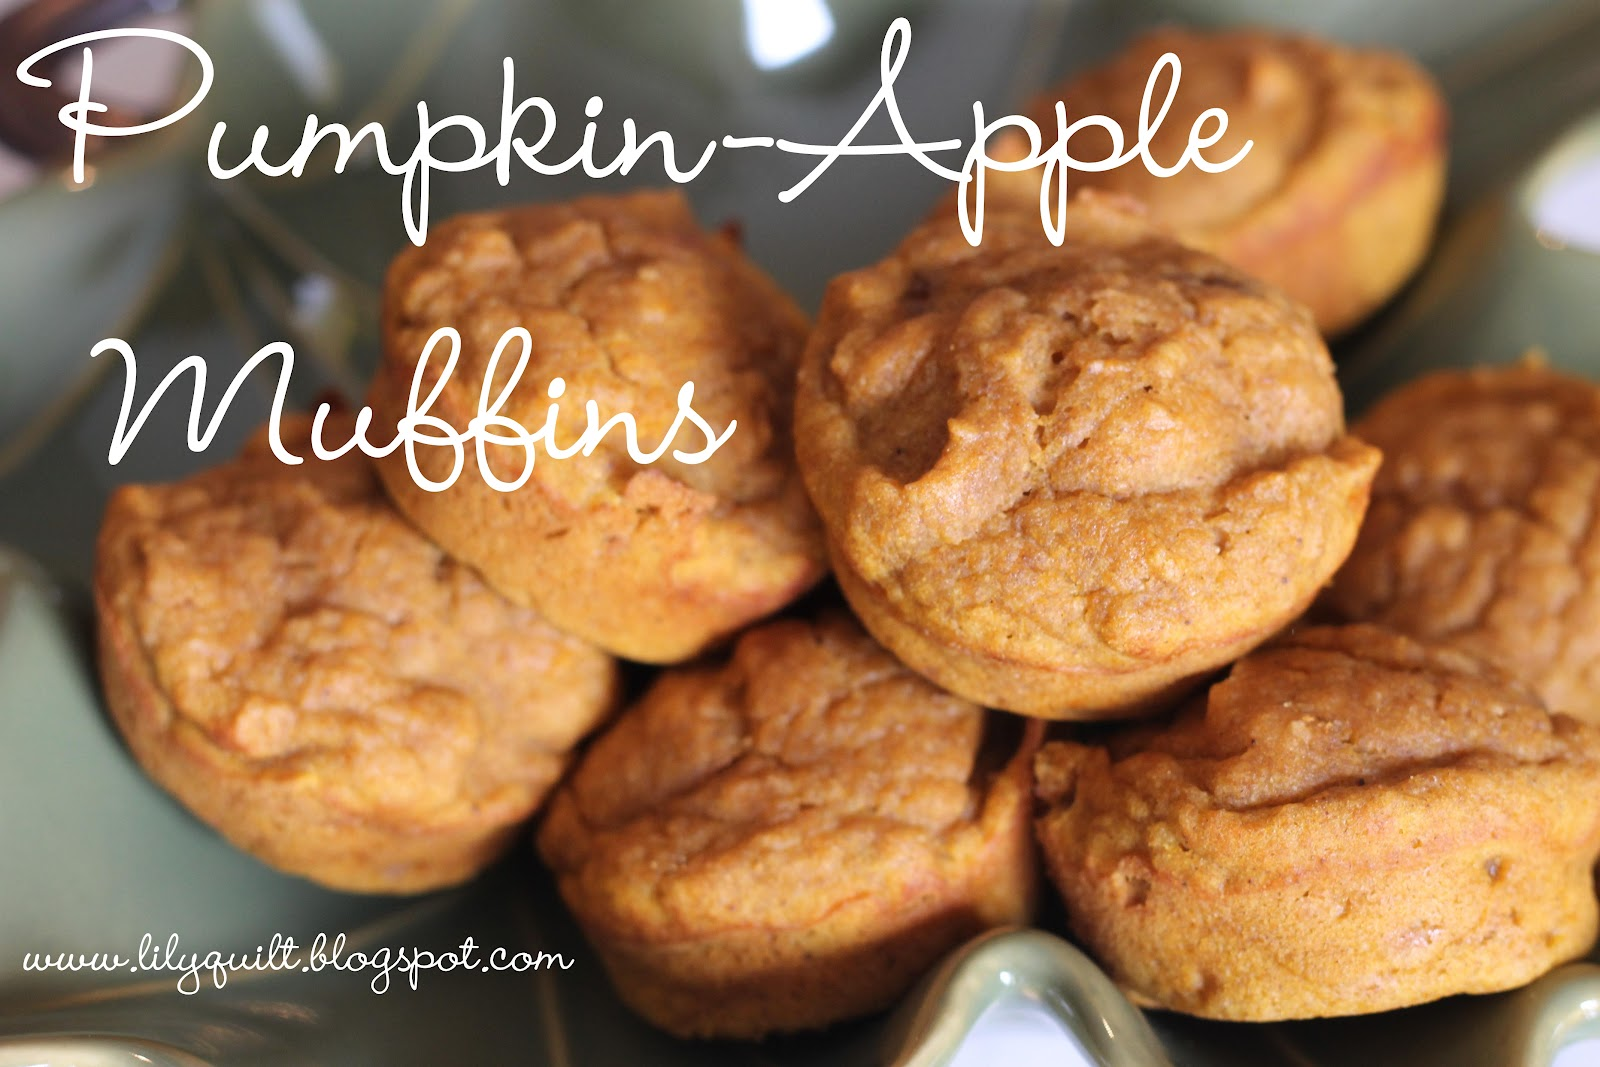 Lilyquilt: Pumpkin-Apple Muffins